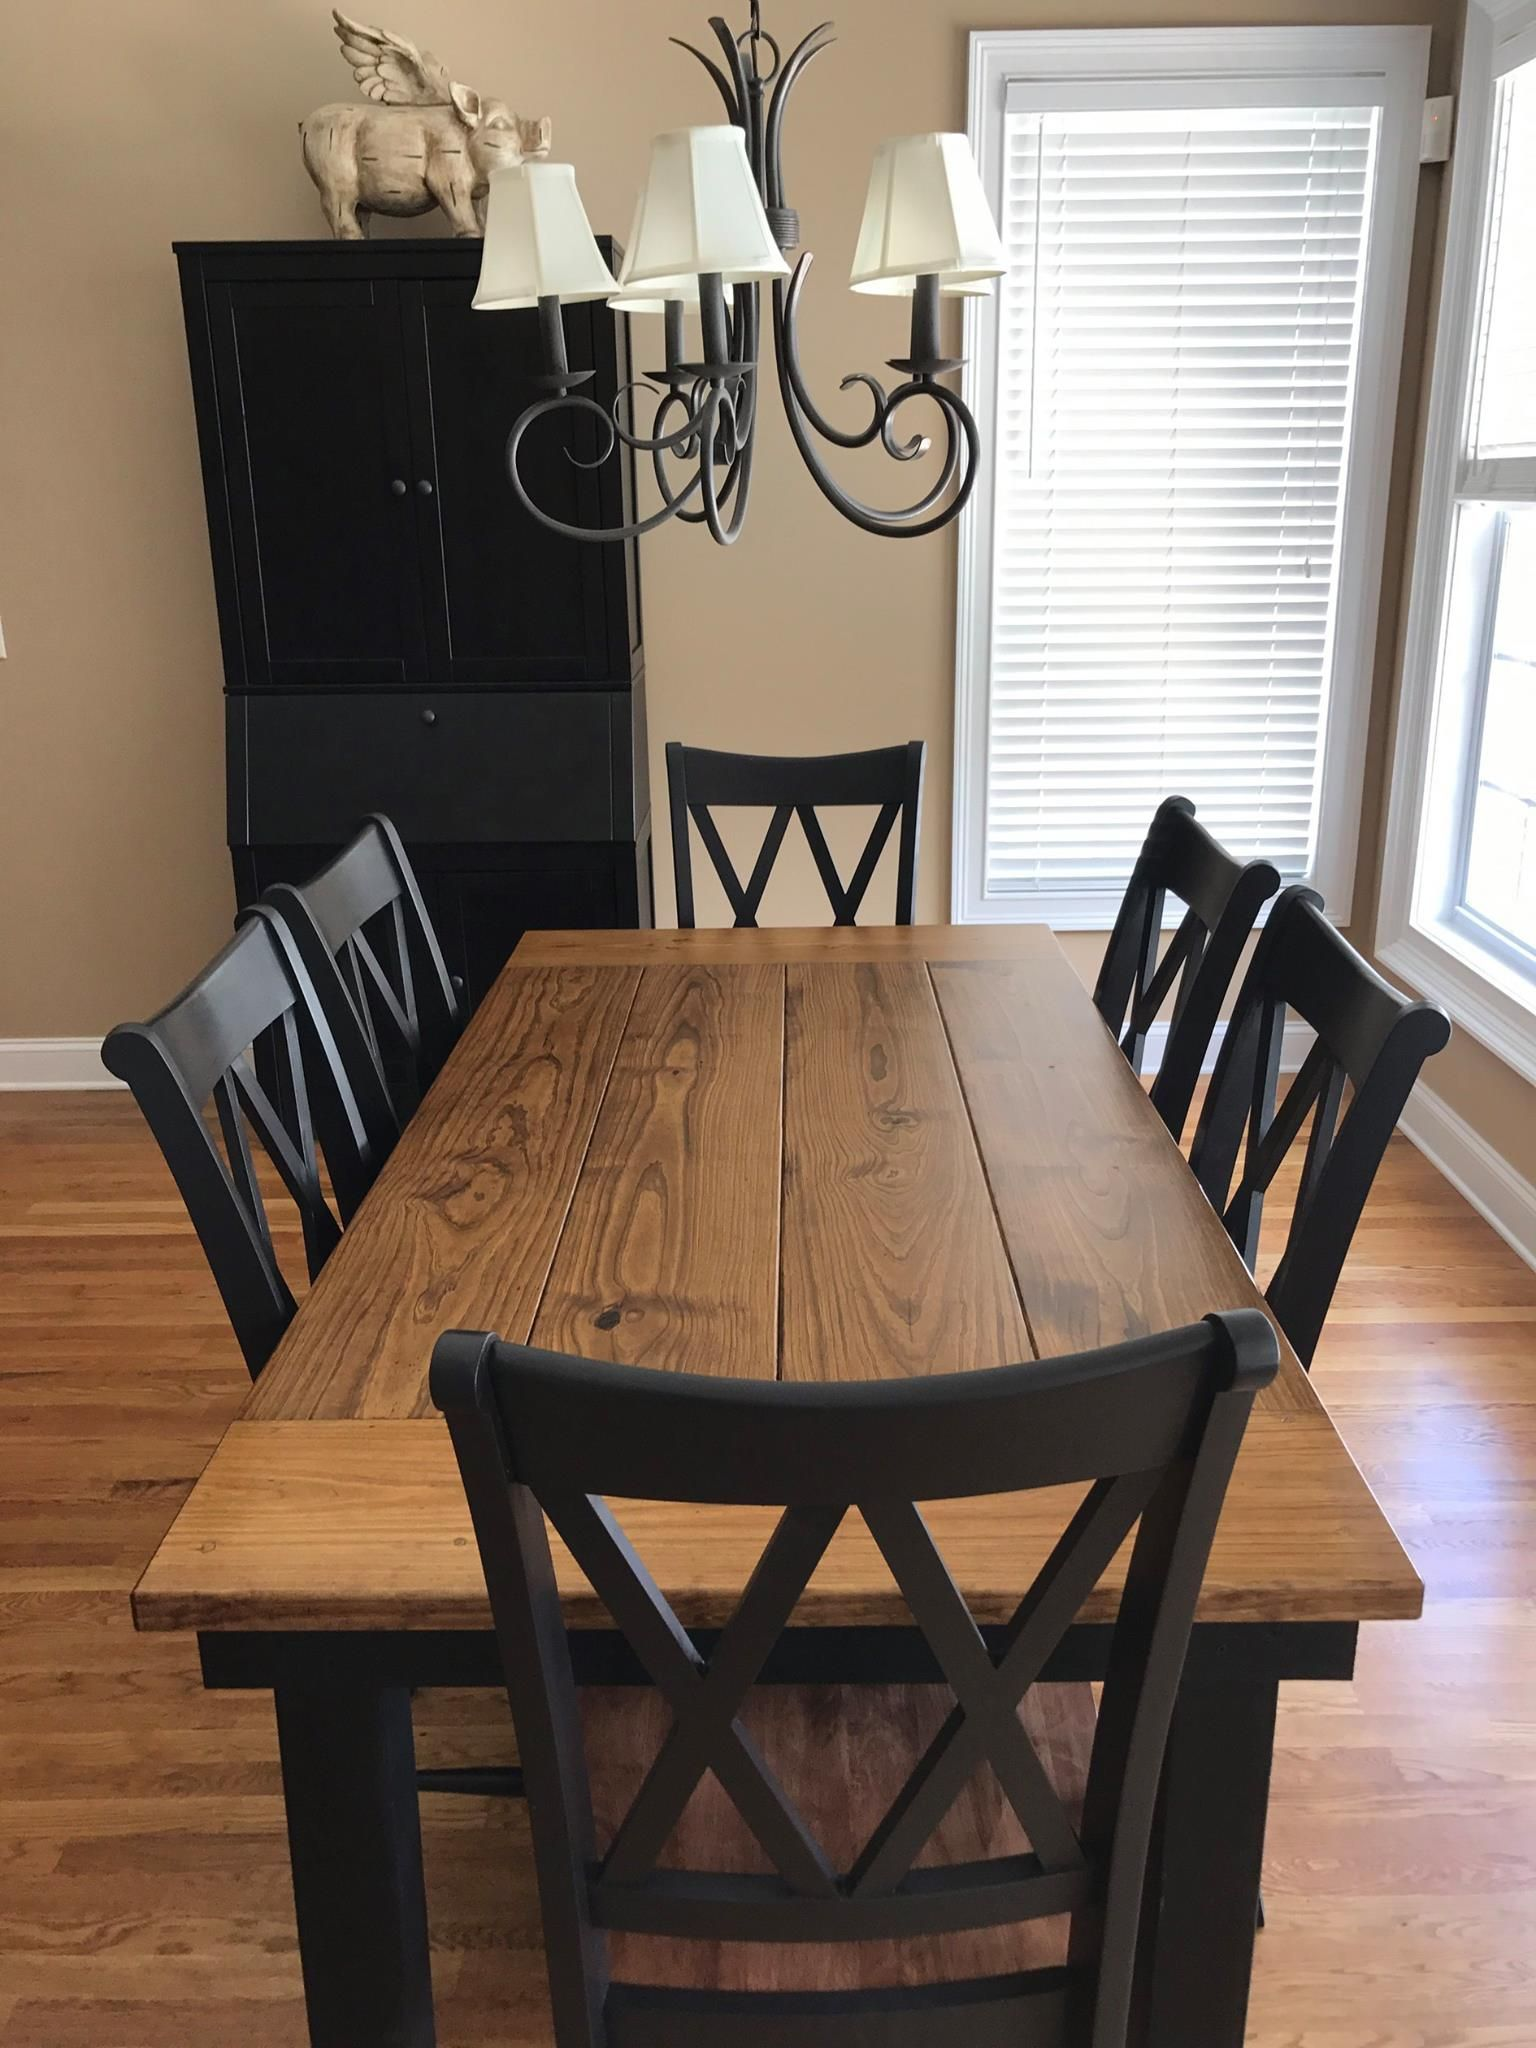 Steel X Base Table - Pine | Farmhouse dining room table ...